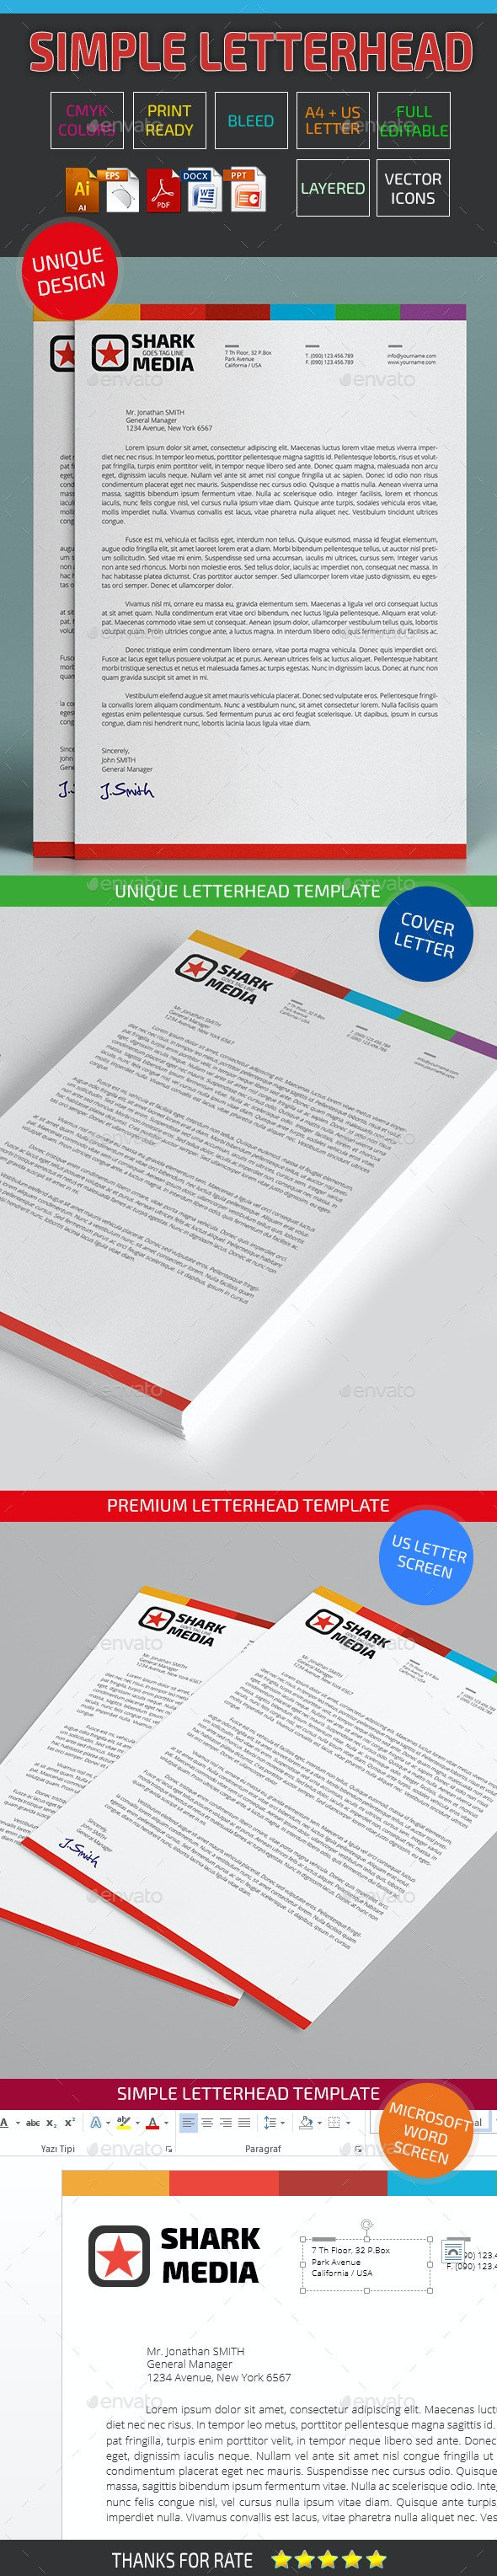 Simple Letterhead Template 02 - Stationery Print Templates